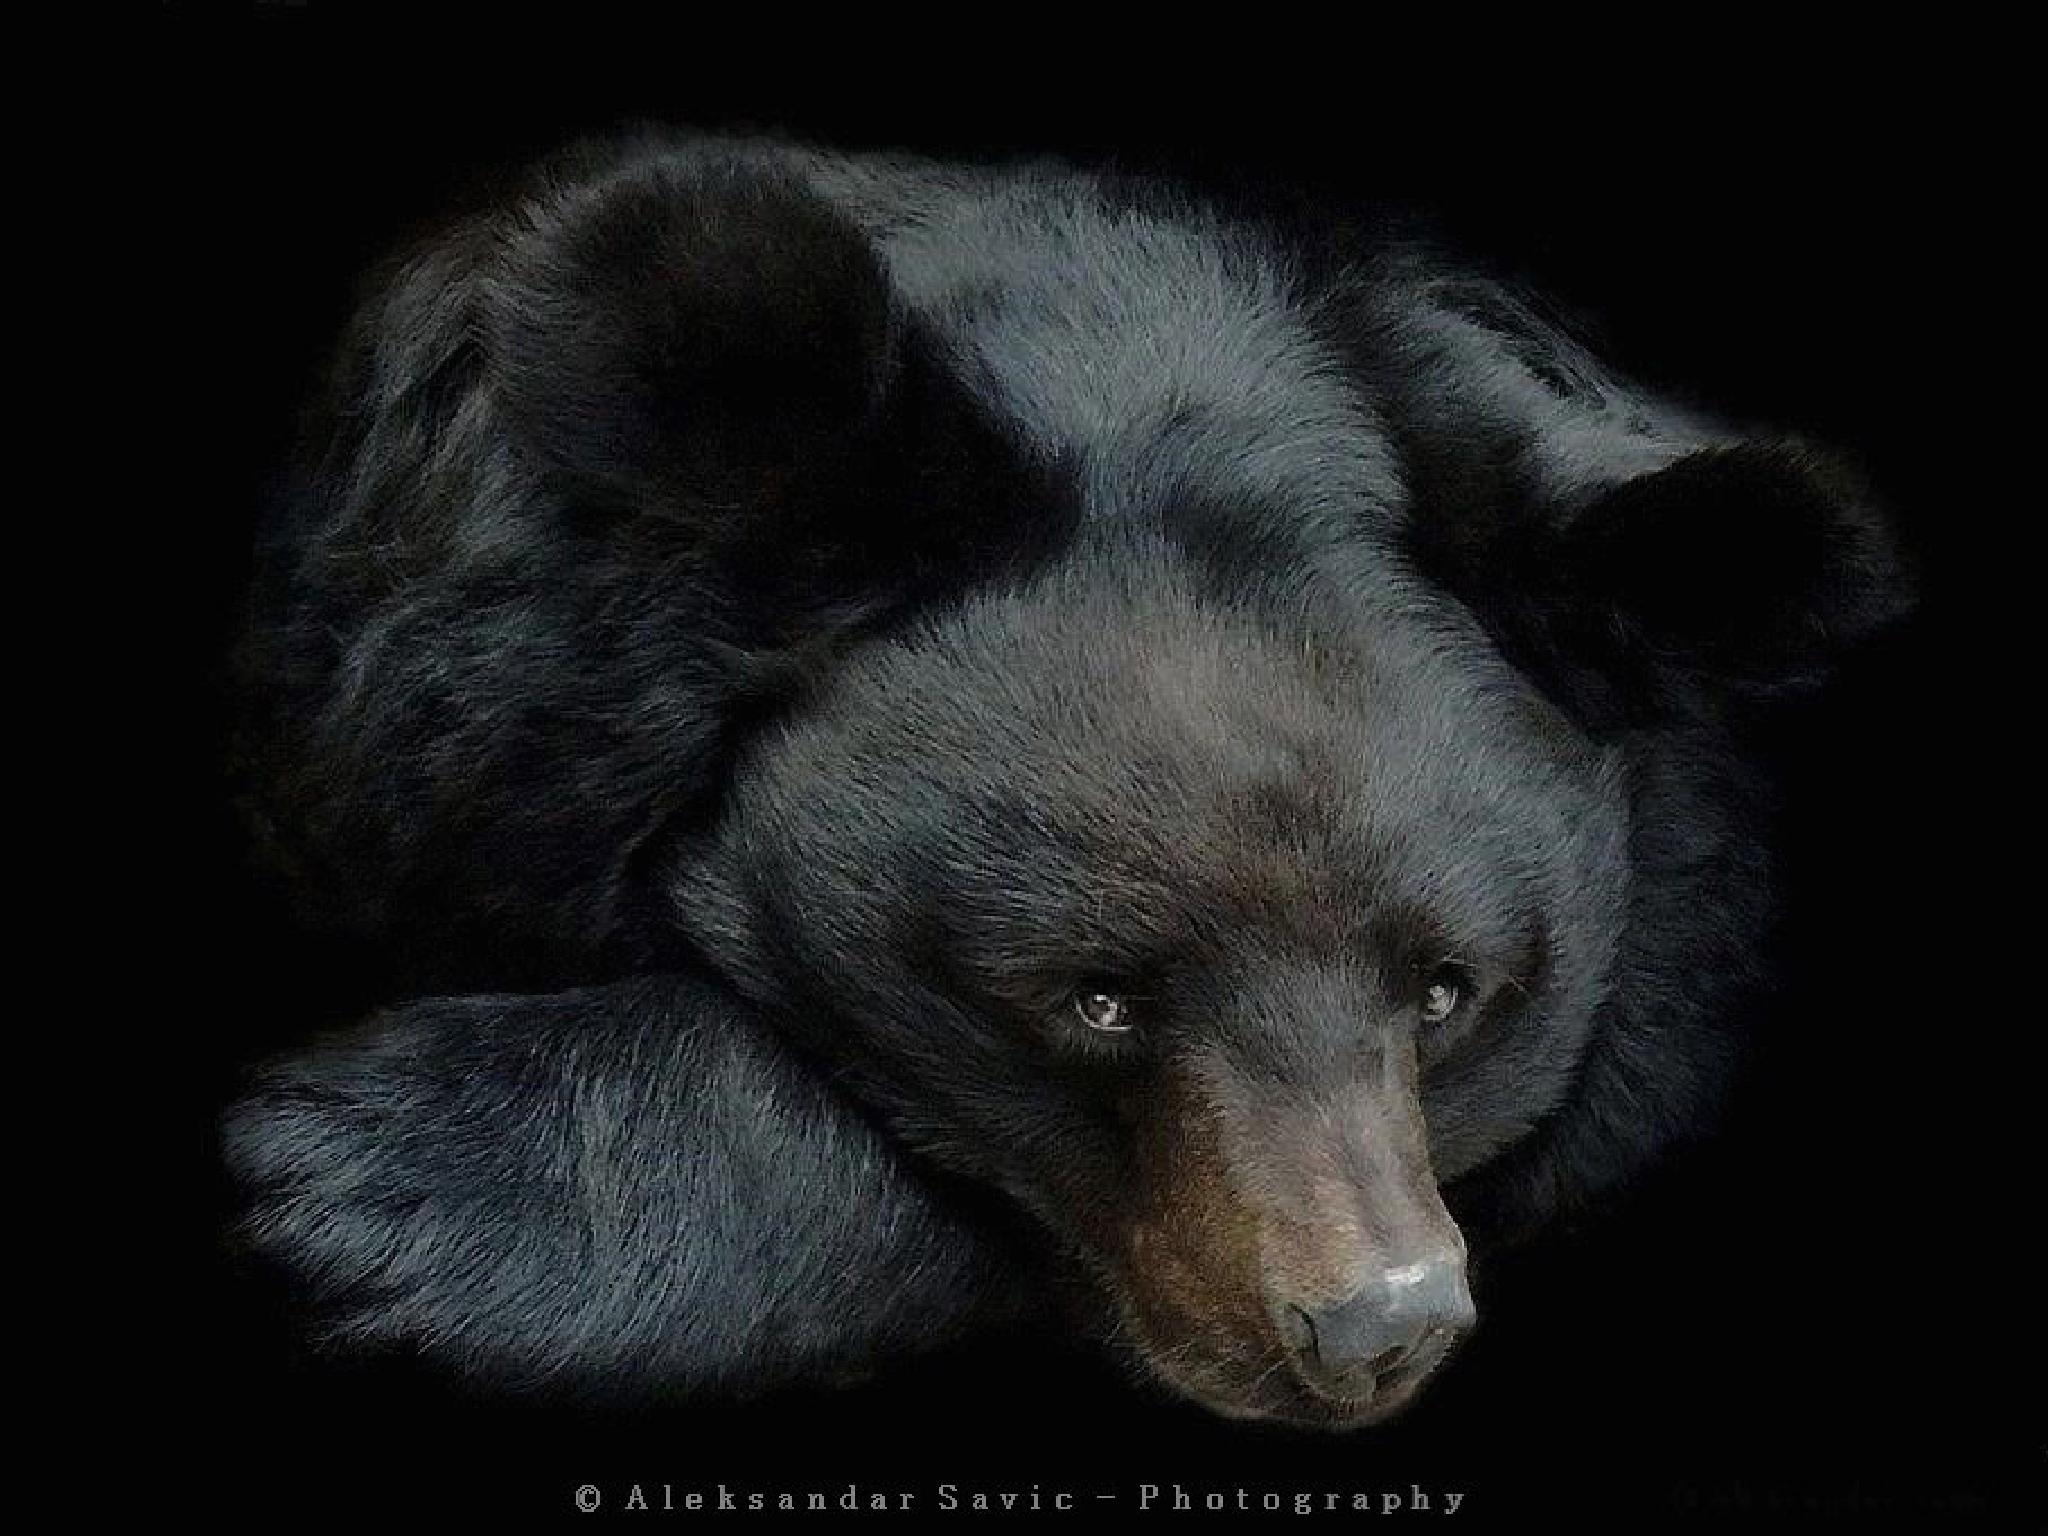 Asian Black Bear by Aleksandar Savic